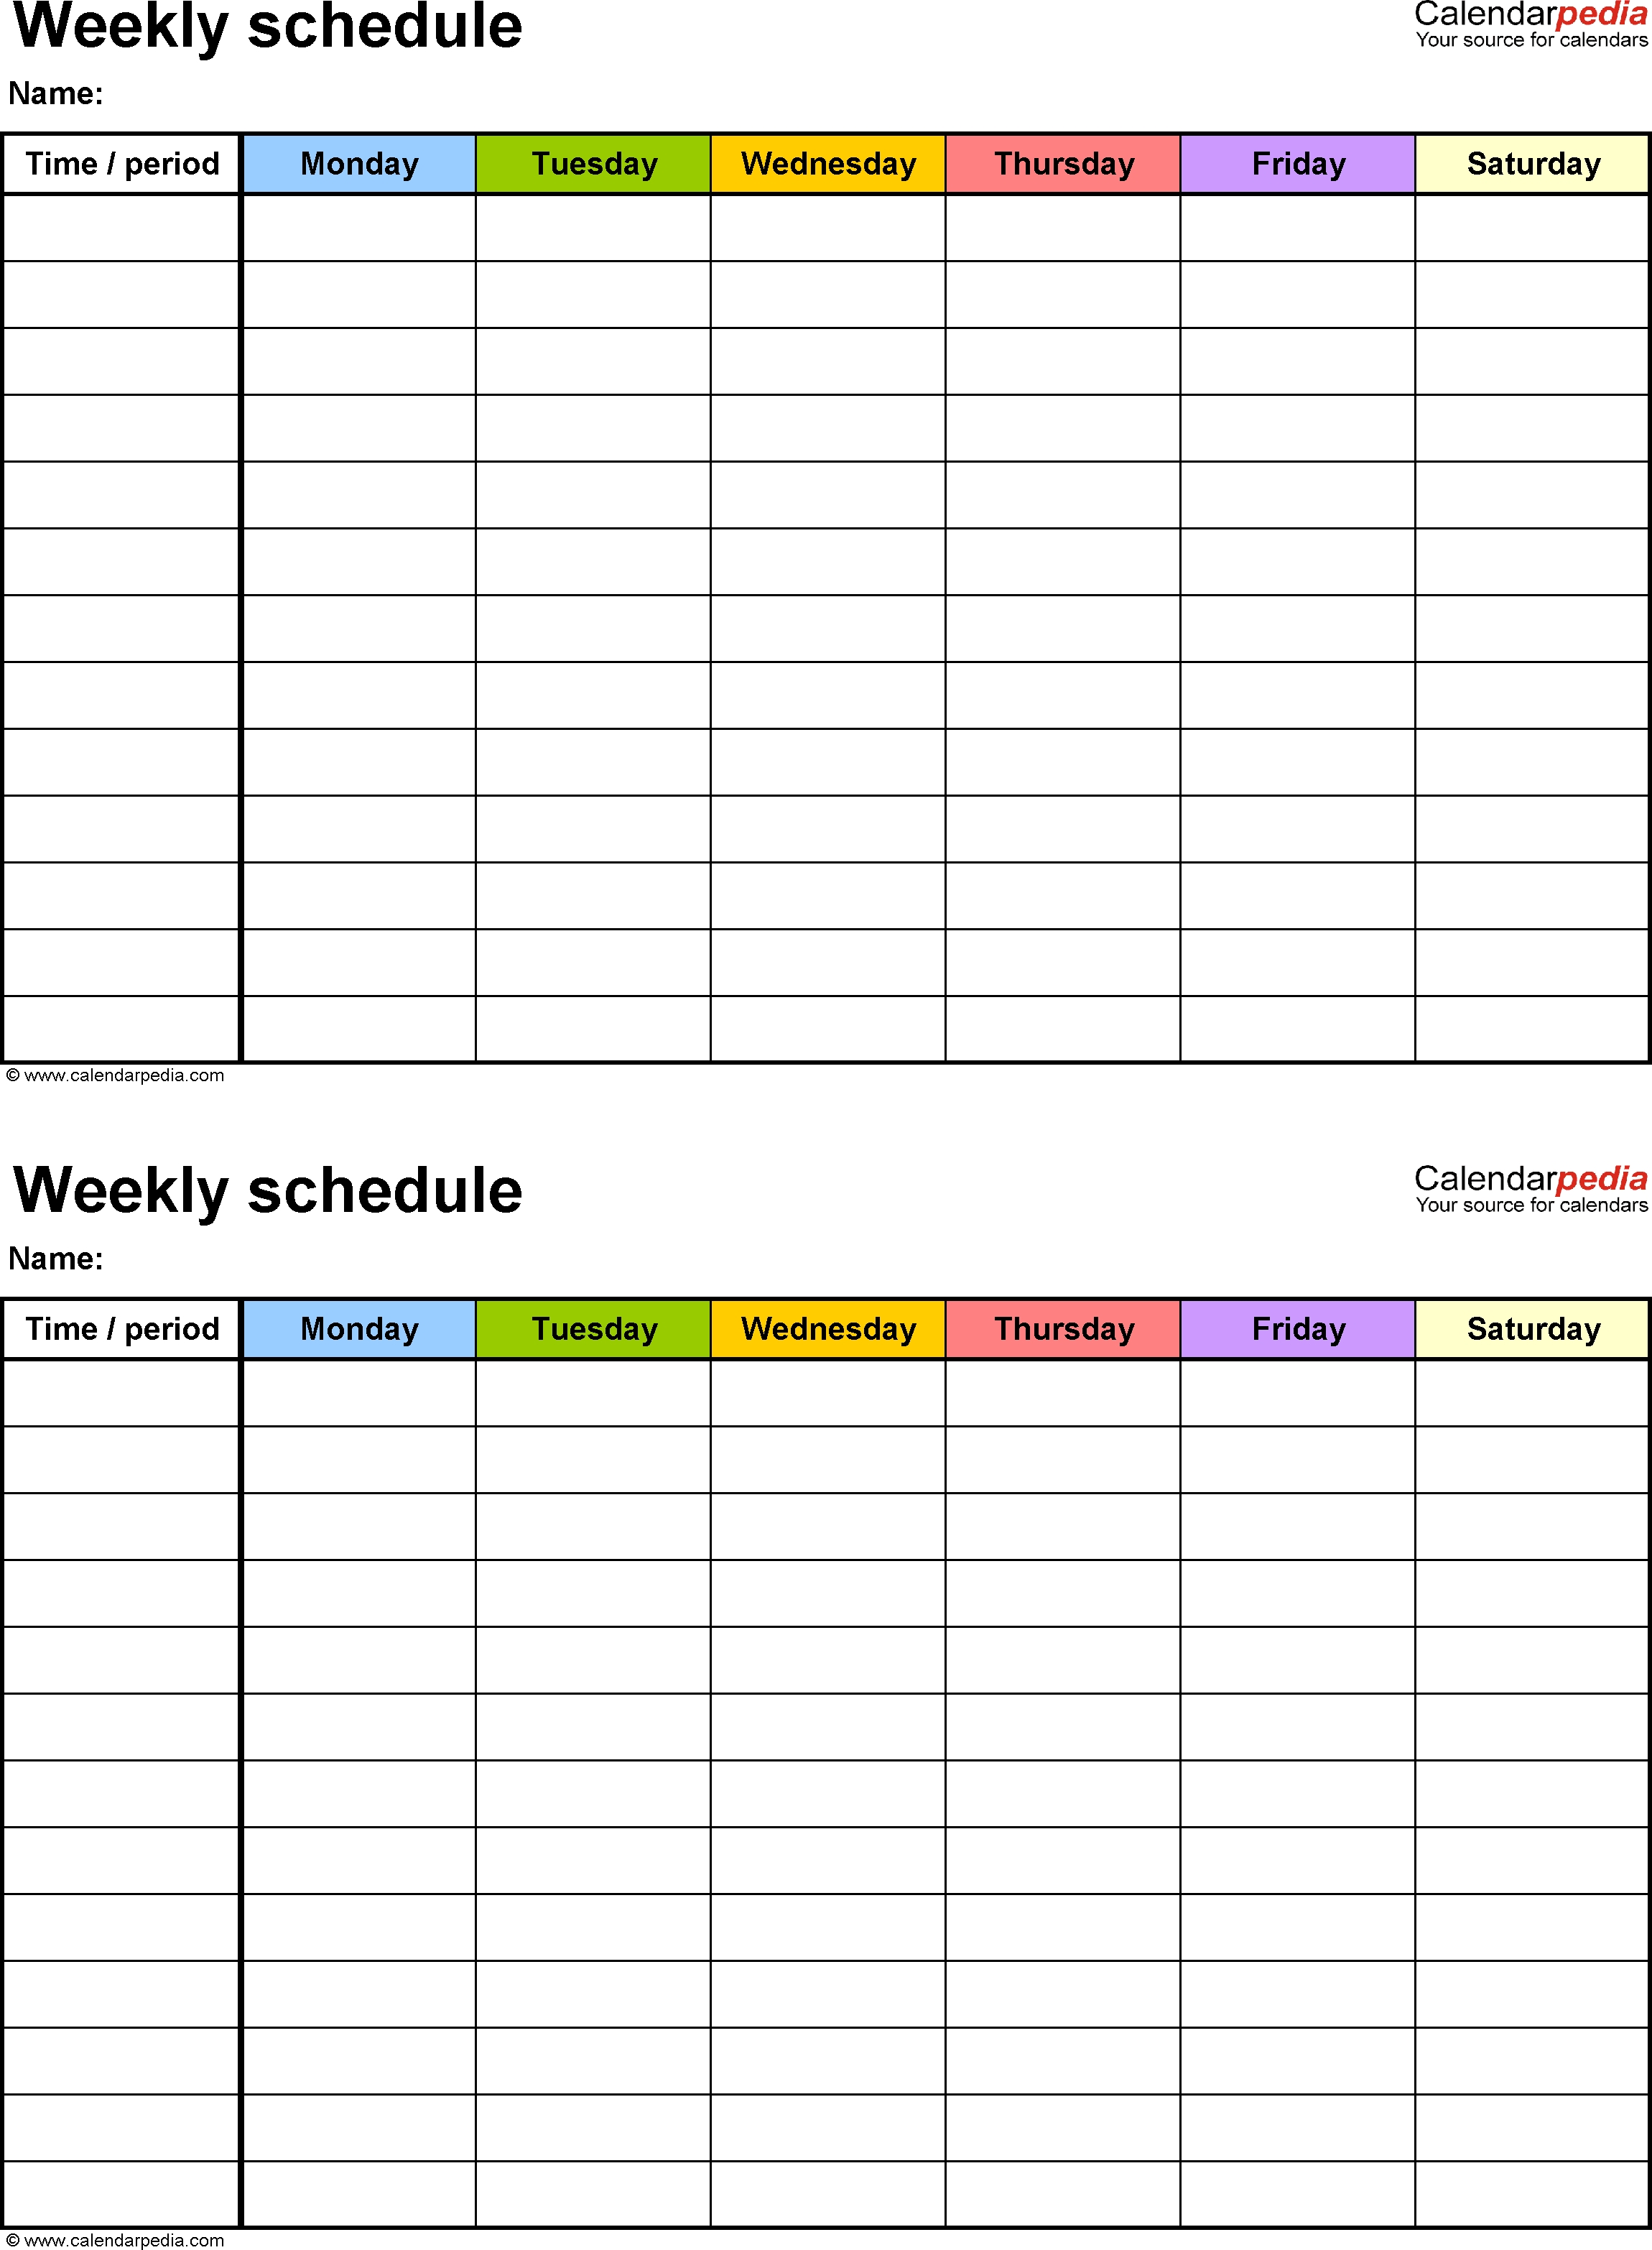 Free Weekly Schedule Templates For Word - 18 Templates throughout Pictures Of A Two Week Calendar